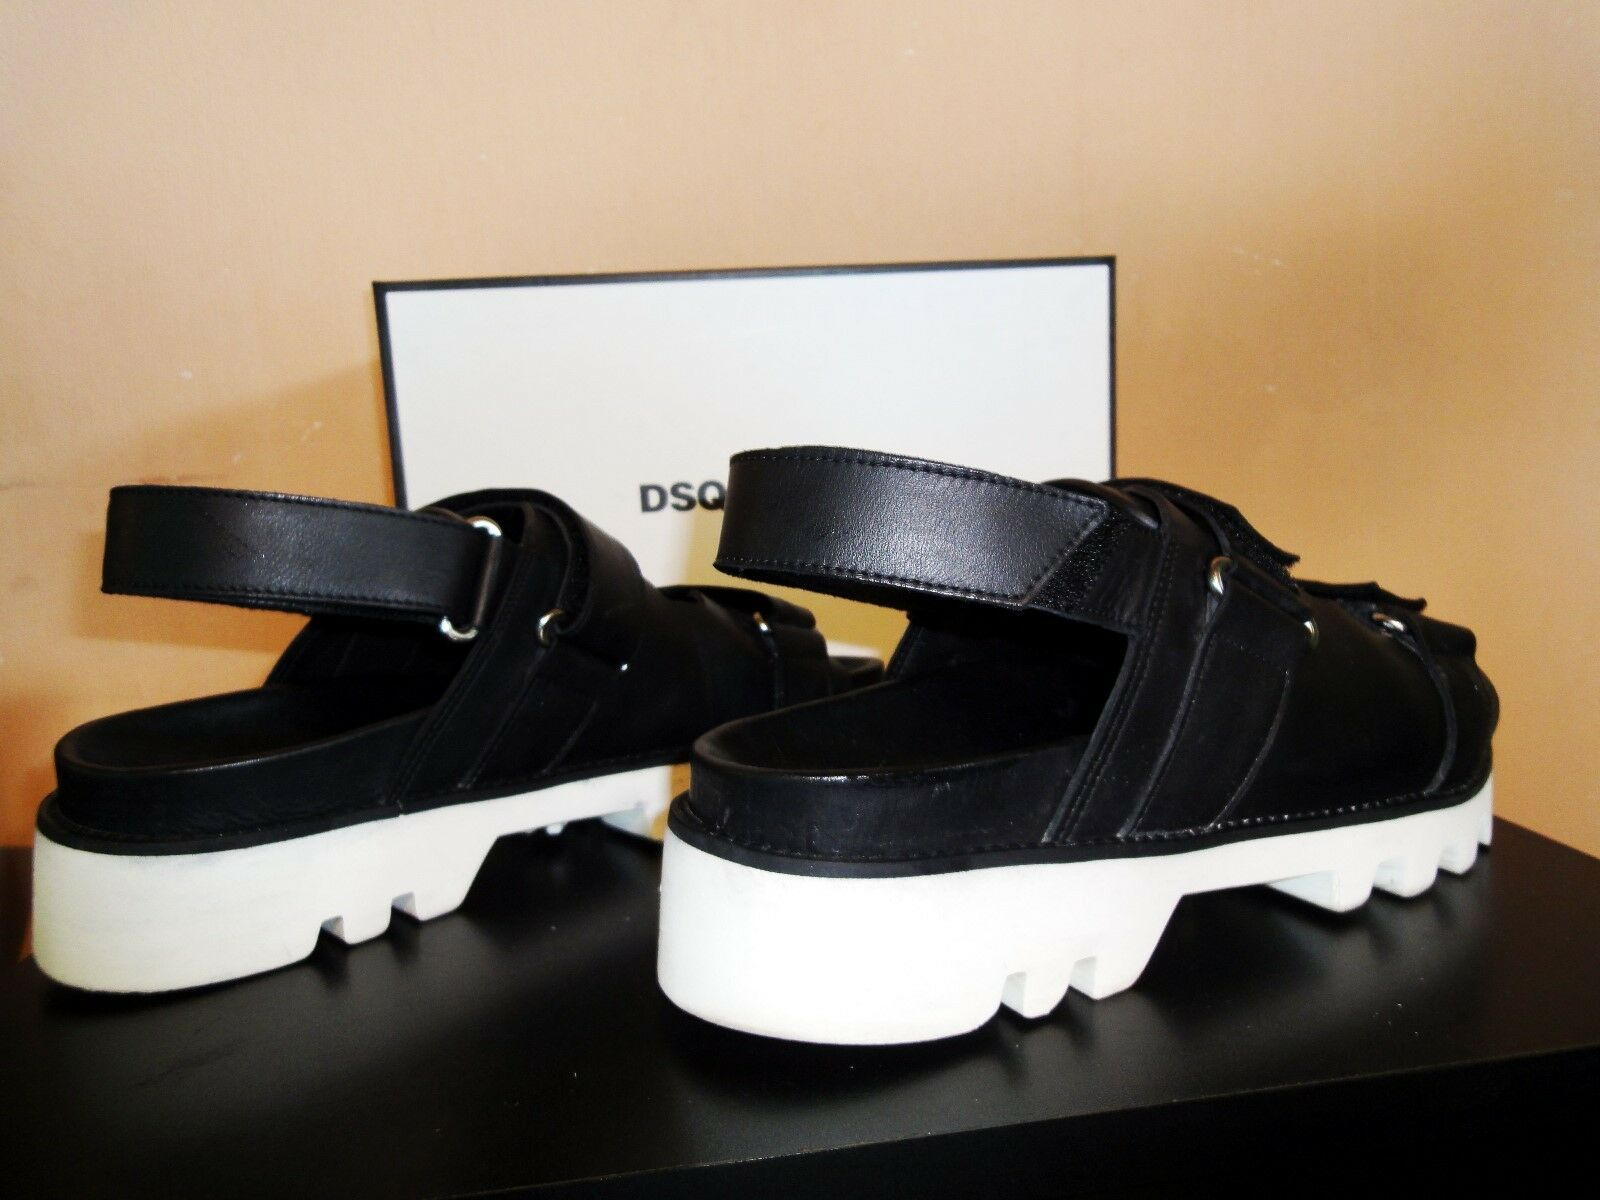 32b63684a ... Gentlemen Ladies Gentlemen Ladies Gentlemen Ladies Dsquared2 sandals  Elegant and sturdy set meal ...